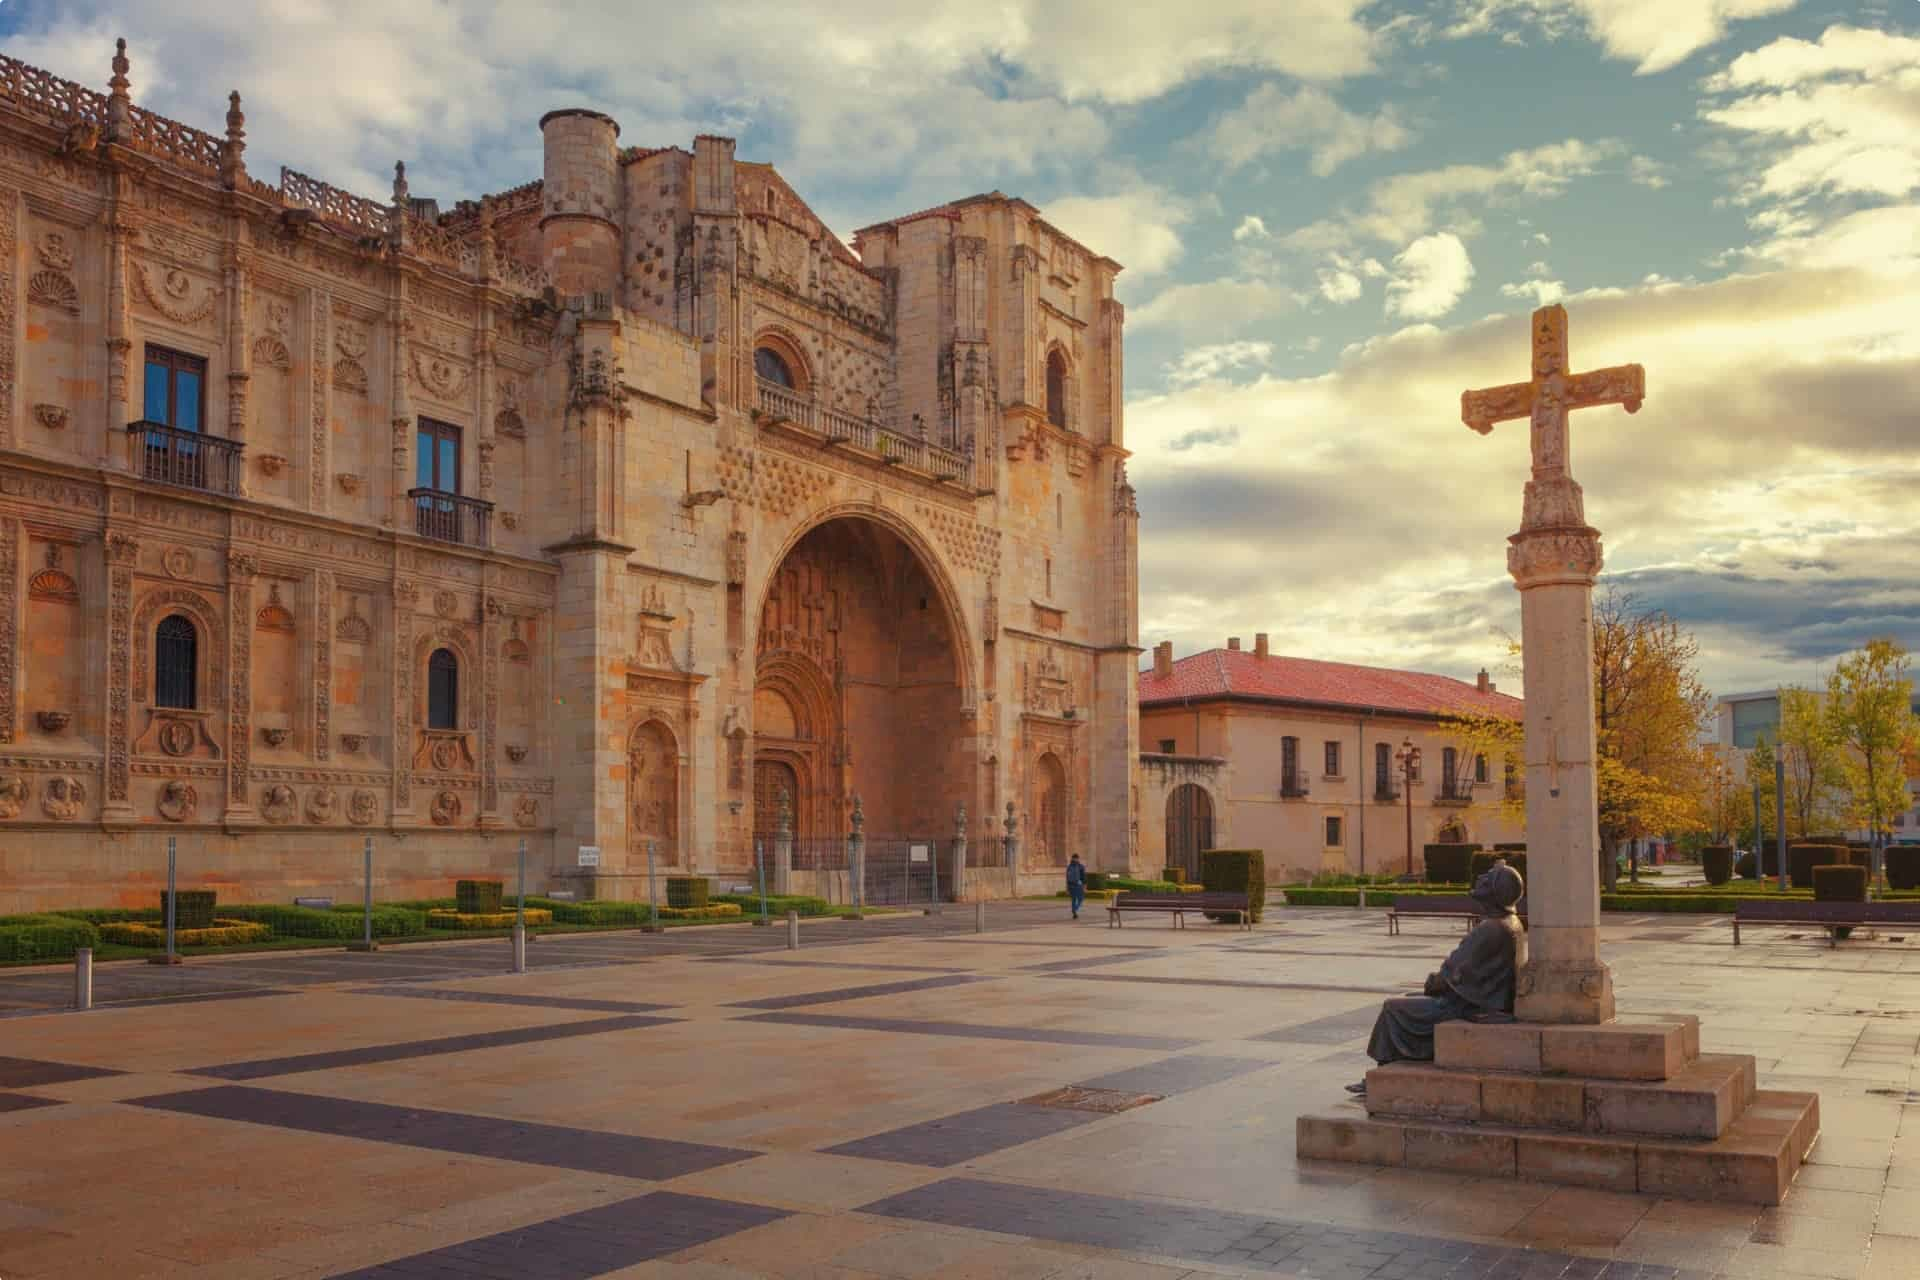 San Marcos, old hospital for pilgrims of the Way of St. James, Leon, Spain